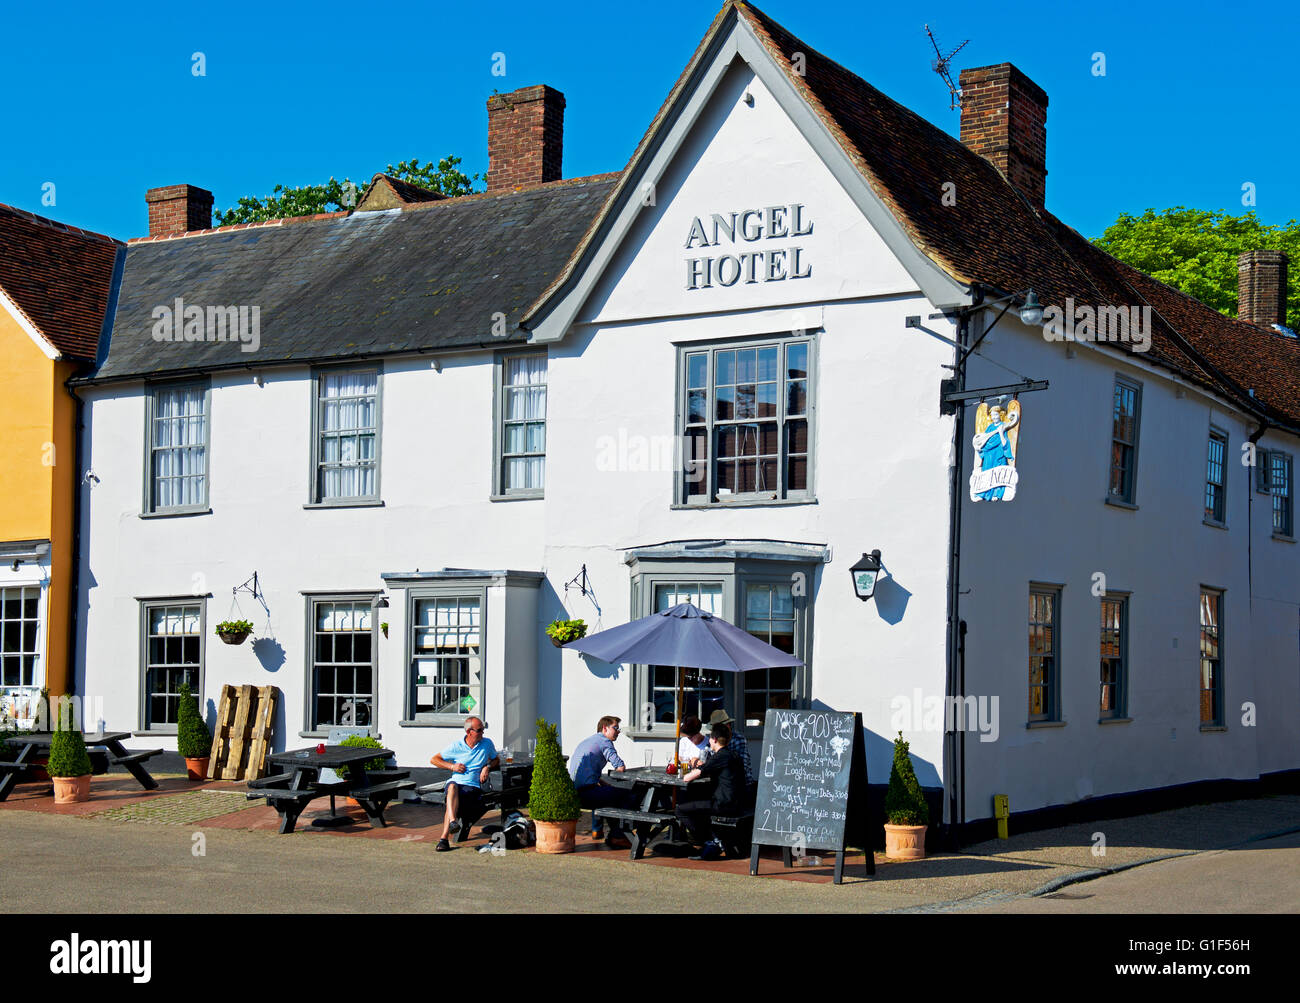 The Angel Hotel in the village of Lavenham, Suffolk, England UK - Stock Image